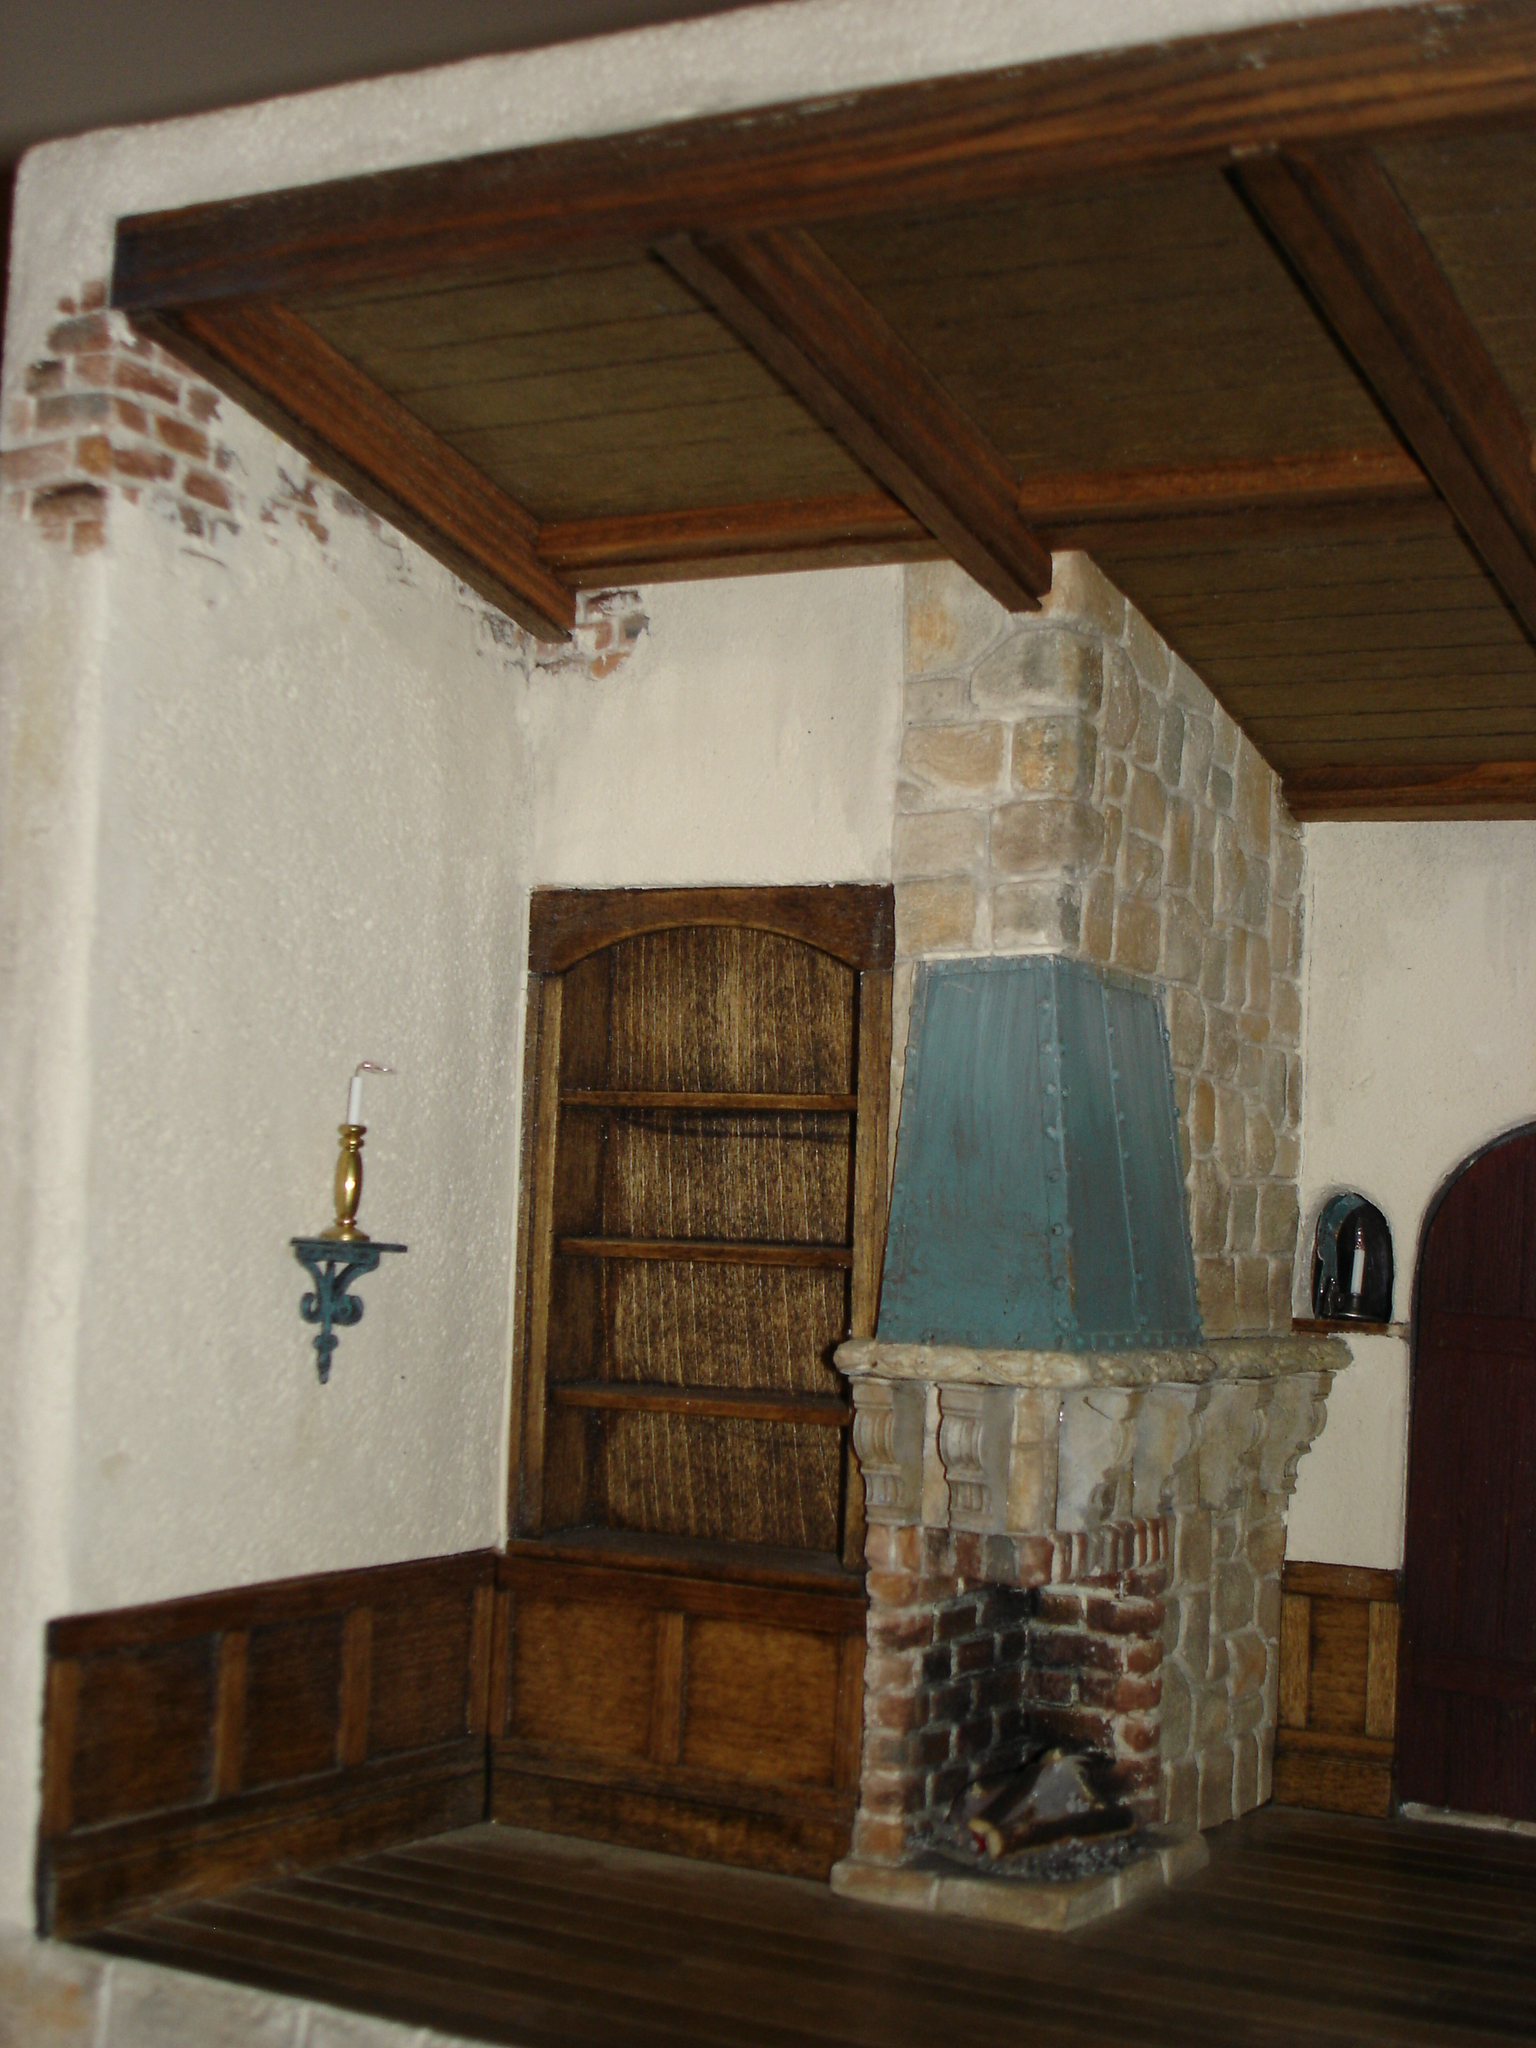 Bookshelf & Fireplace